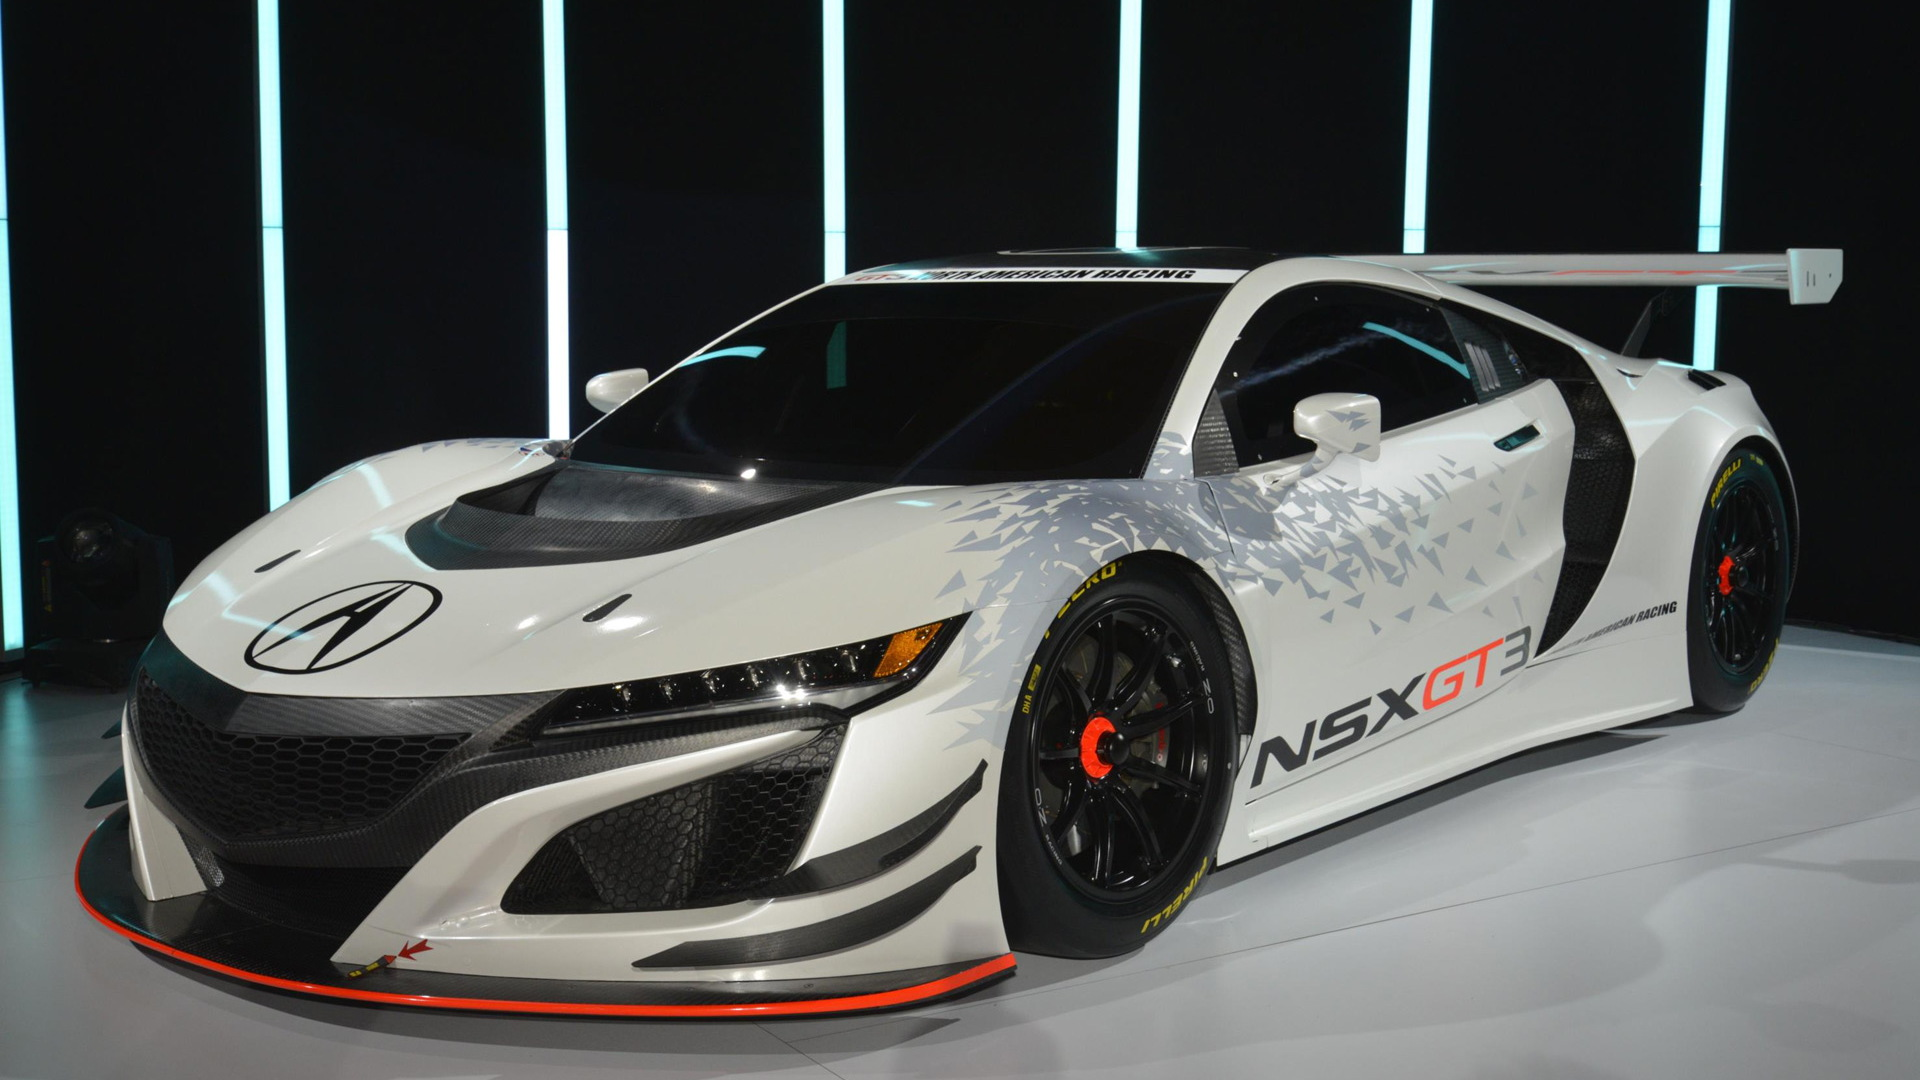 2017 Acura Nsx Gt3 Race Car 2016 New York Auto Show